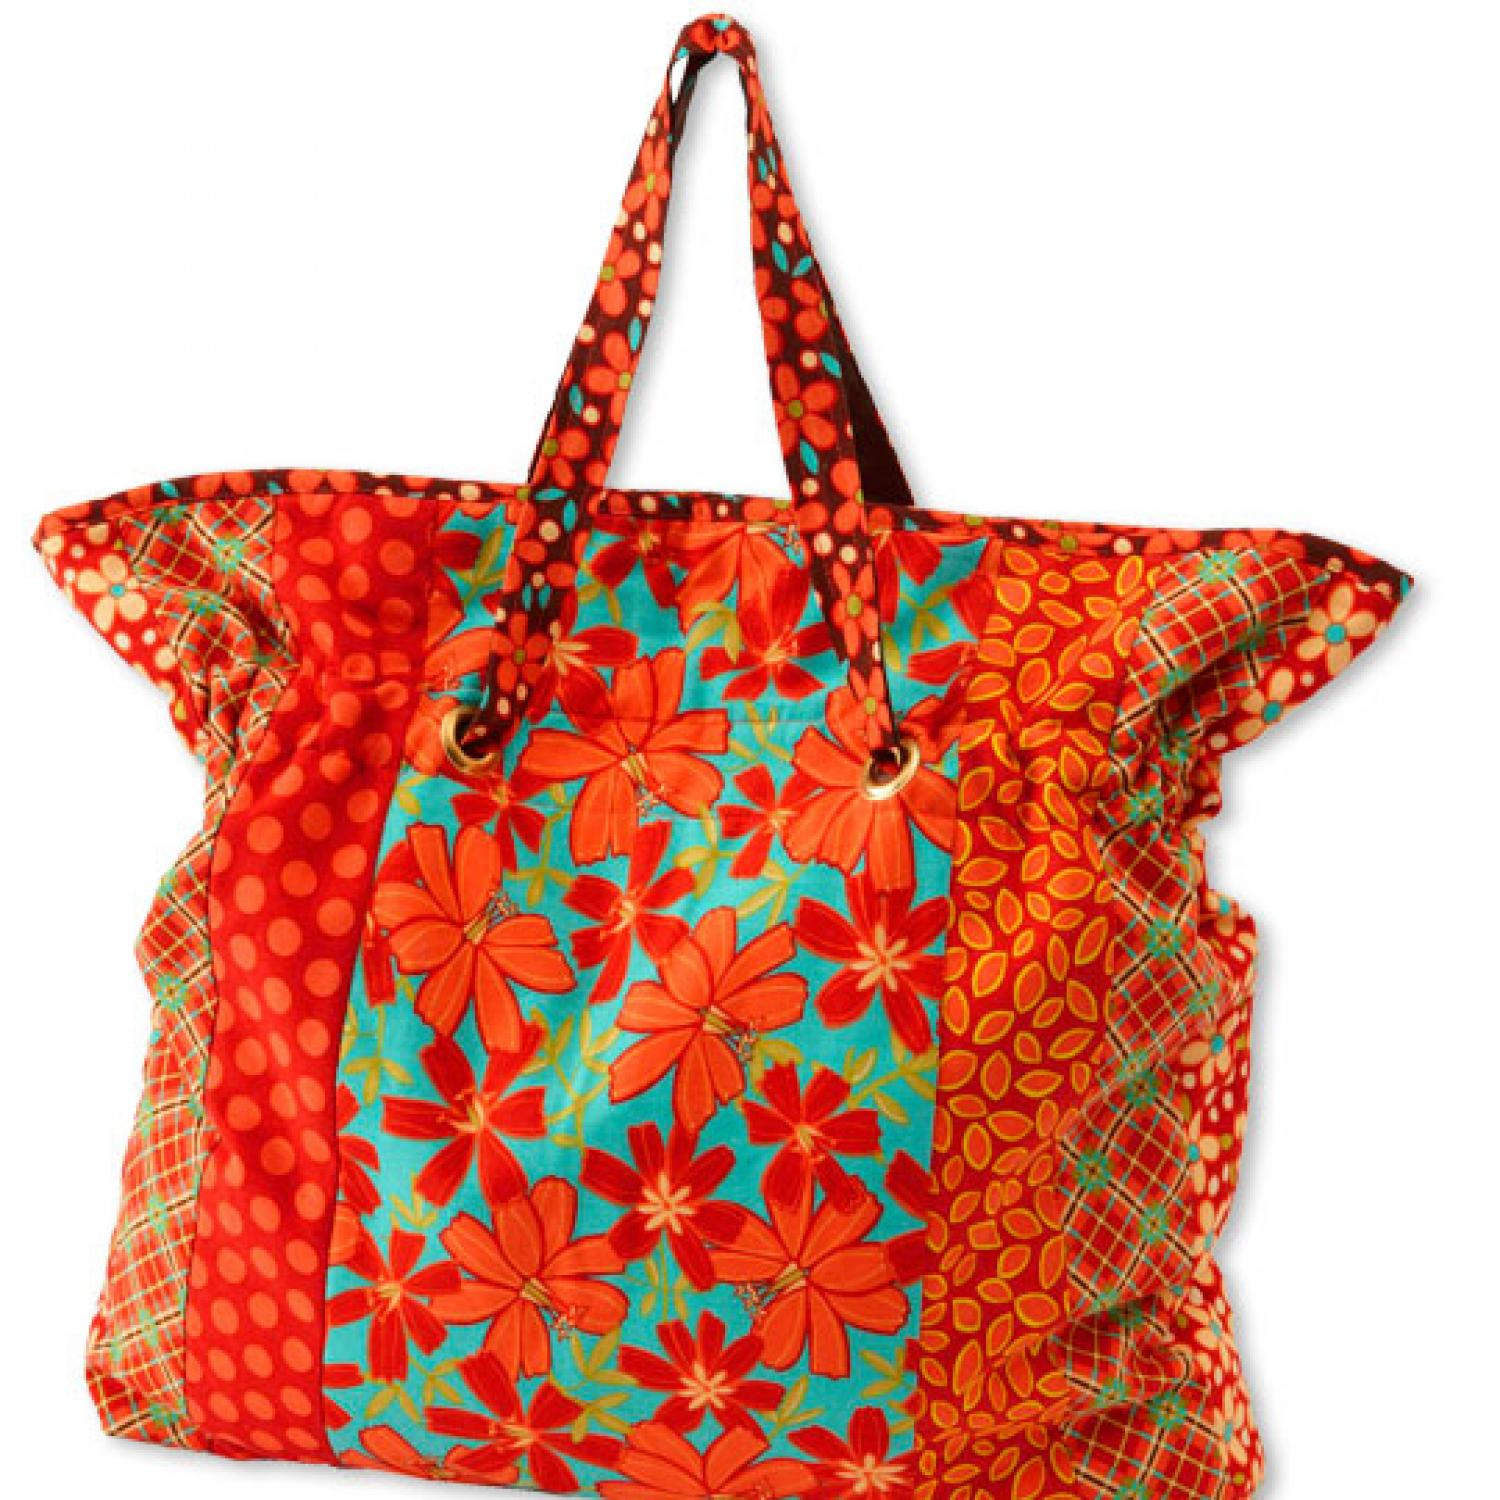 Cinch it tote bag allpeoplequilt jeuxipadfo Image collections